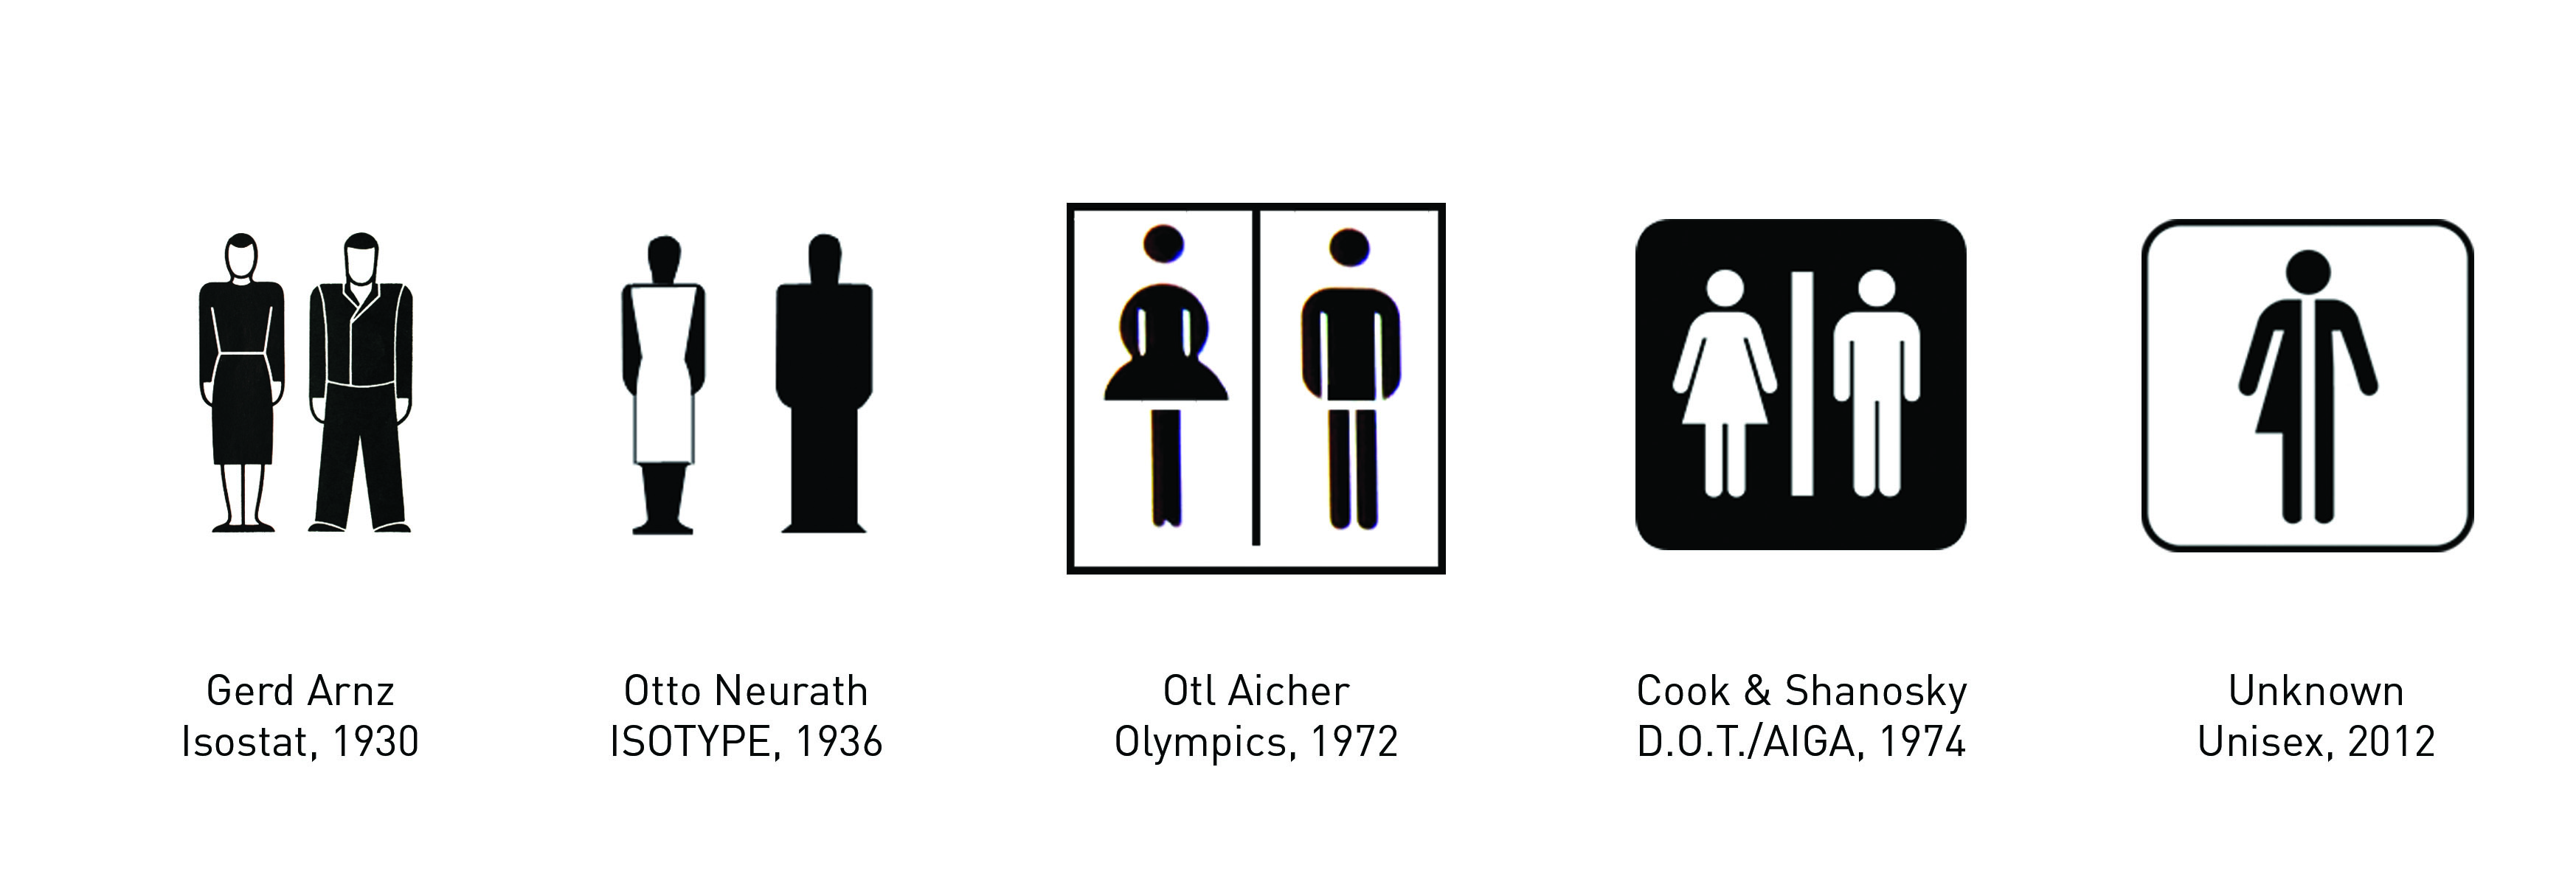 Figure 13.: he Evolution of Indexical Restroom Figures: The convention of exaggerating the woman's skirt to gender-mark the female restroom figure forever changed the way we interpret human icons in visual signage. Source: Dobson, T. 2016.